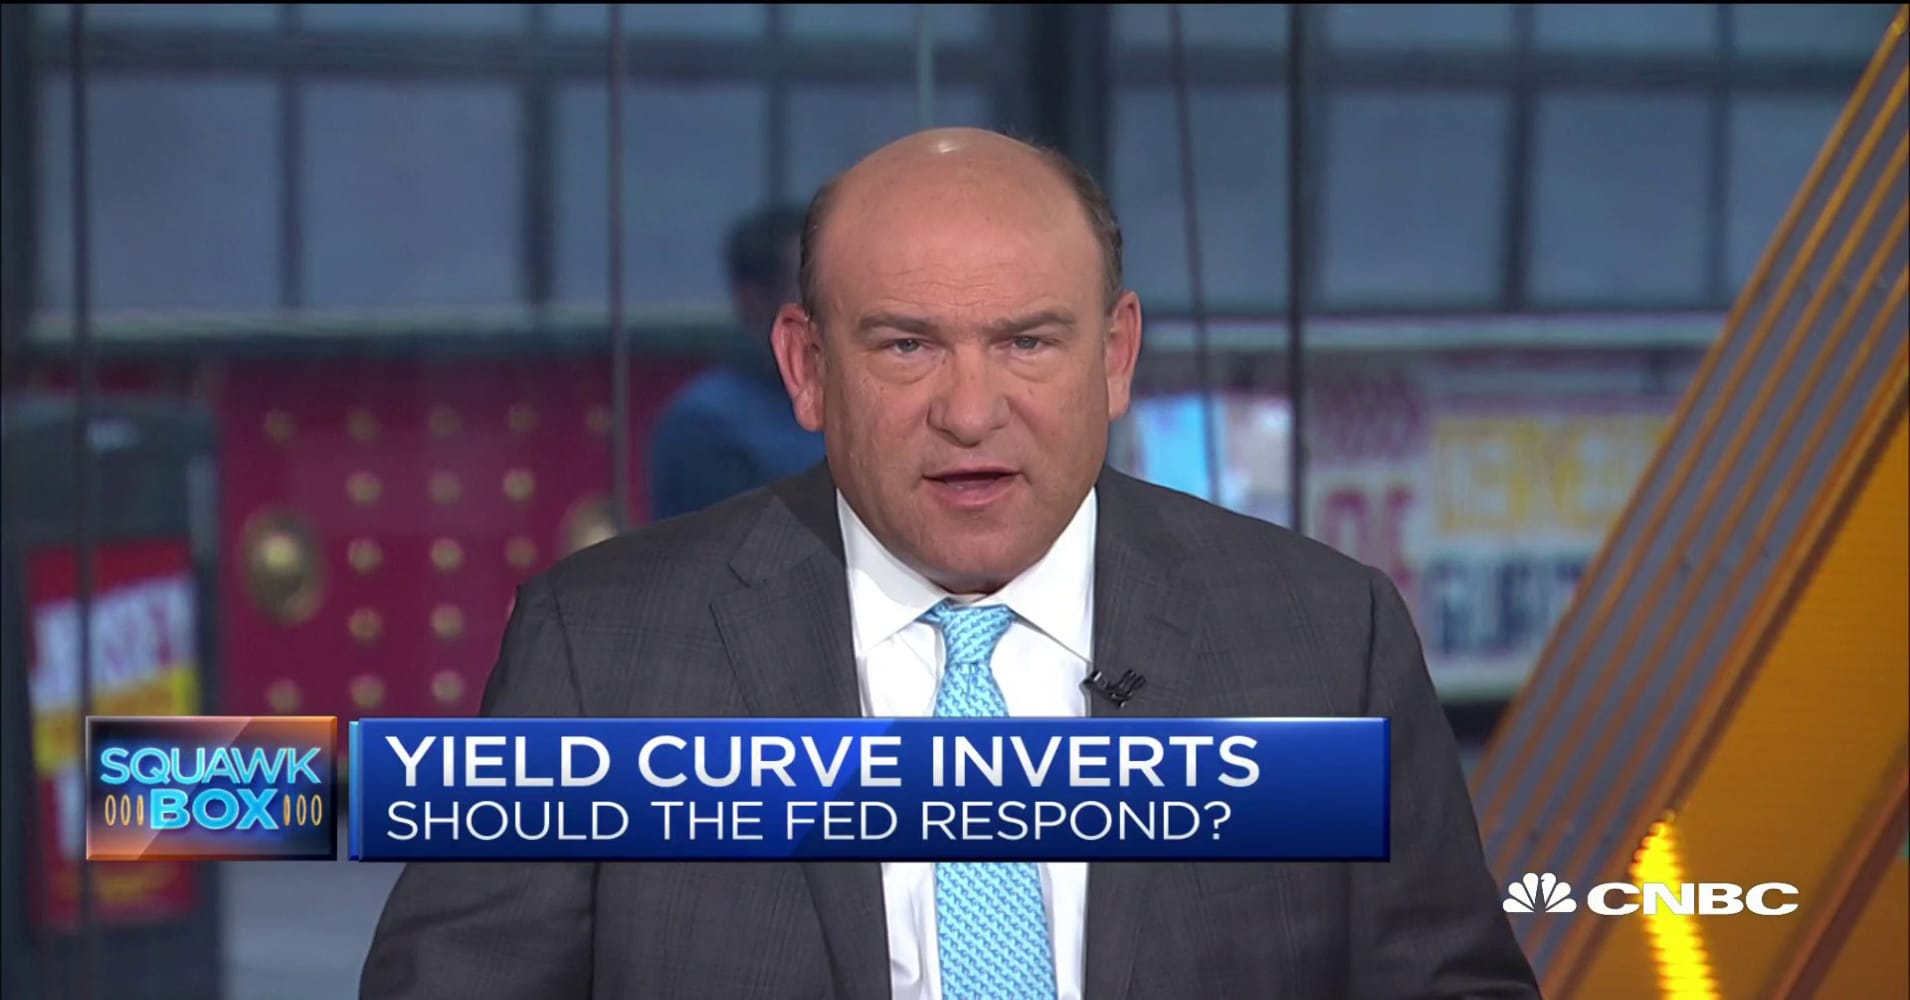 Here's what experts are saying about the inverted yield curve